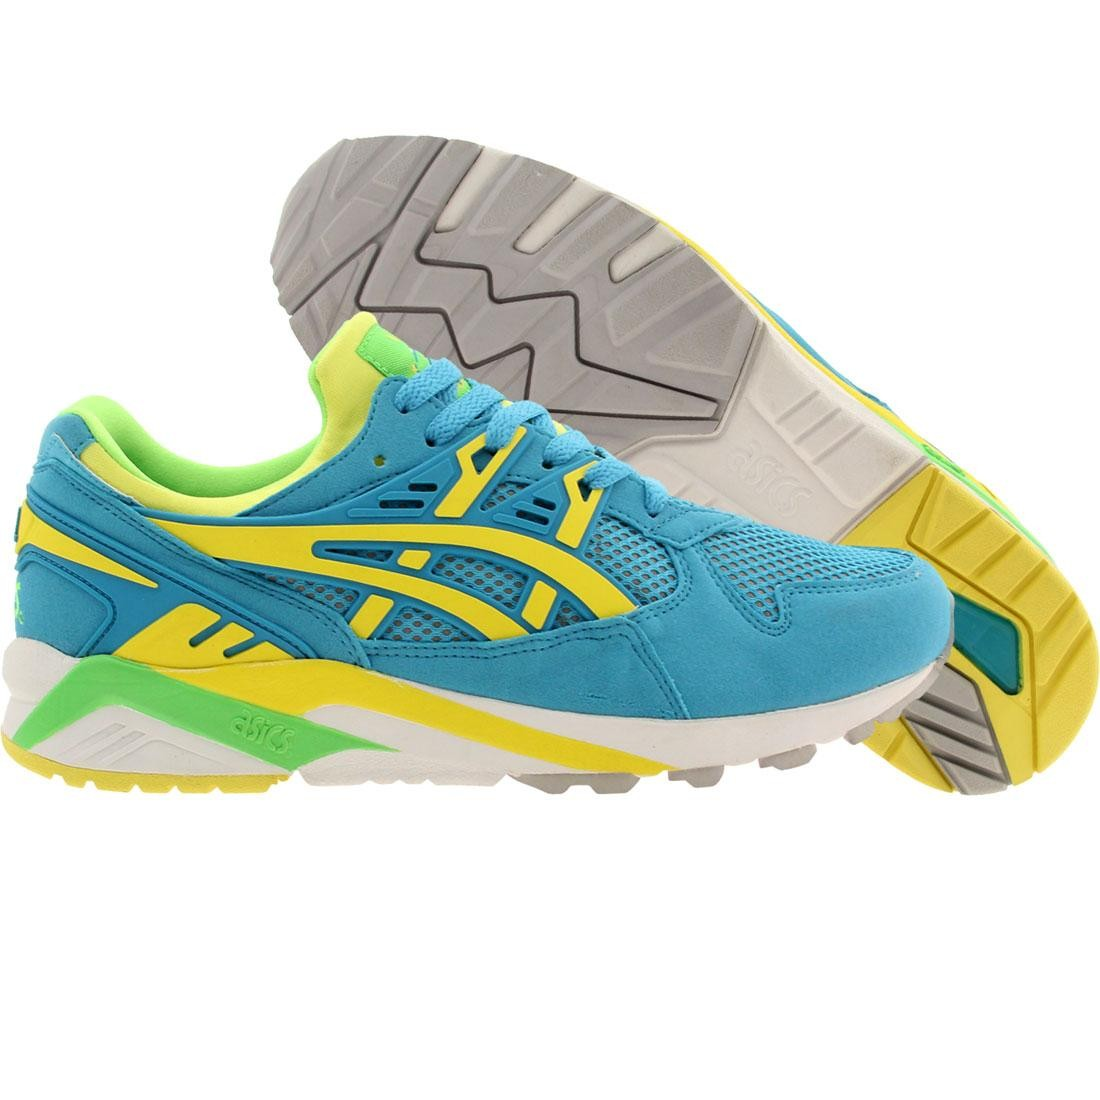 Asics Tiger Men Gel-Kayano Trainer - Flash Pack (blue / yellow)